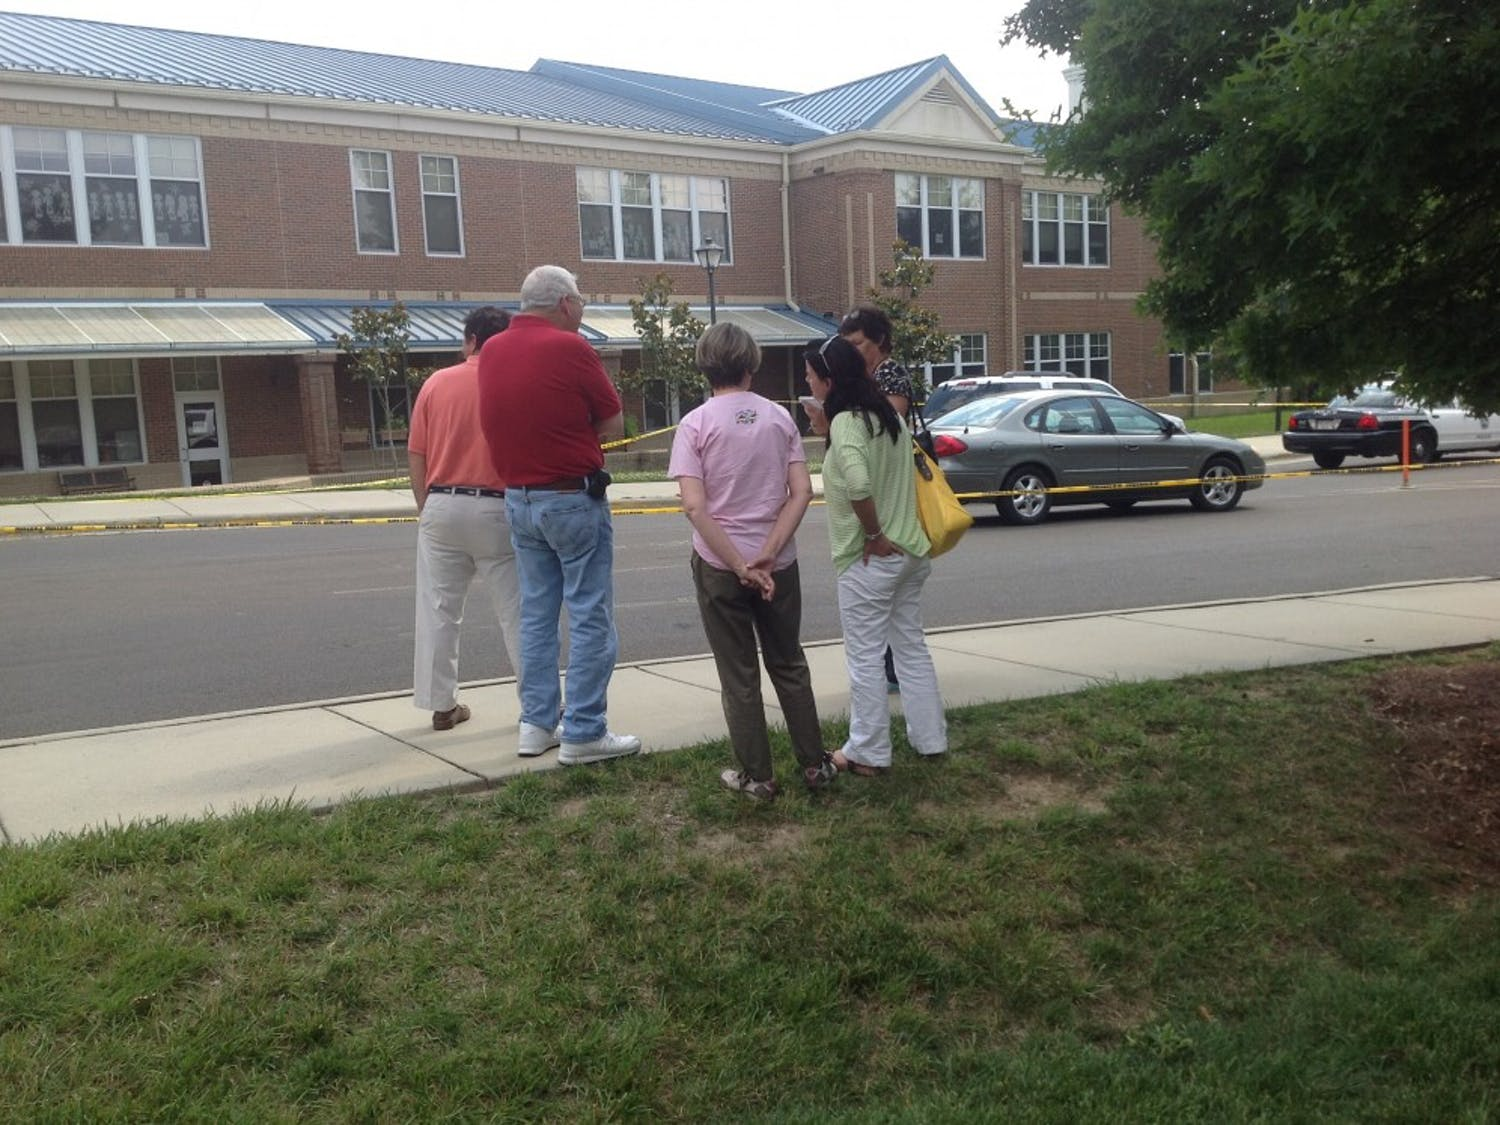 Onlookers watch the scene at Mary Scroggs Elementary after a shooting on May 25.